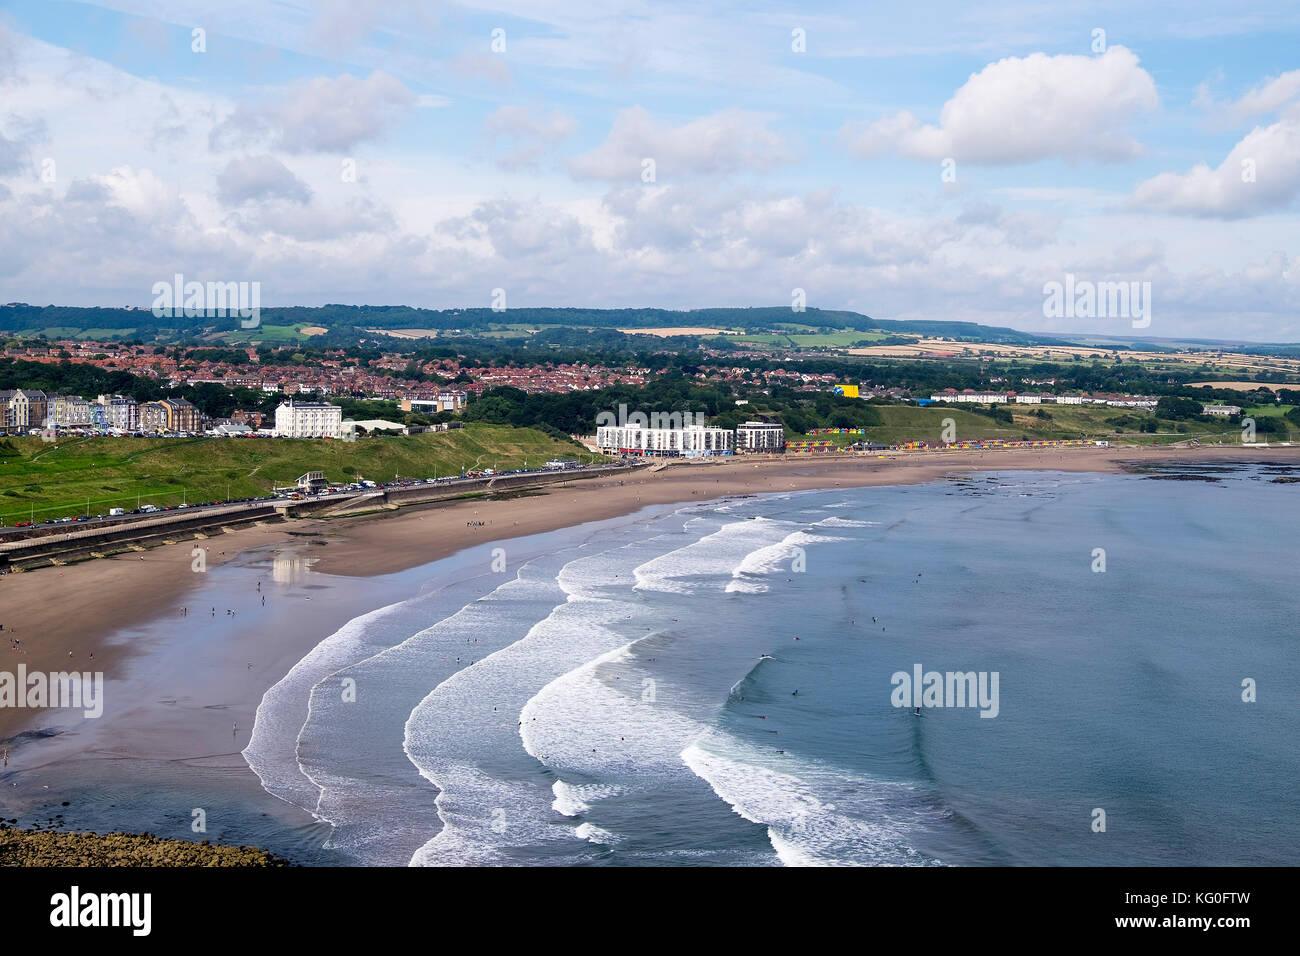 View of Scarborough North Bay, yorkshire uk - Stock Image